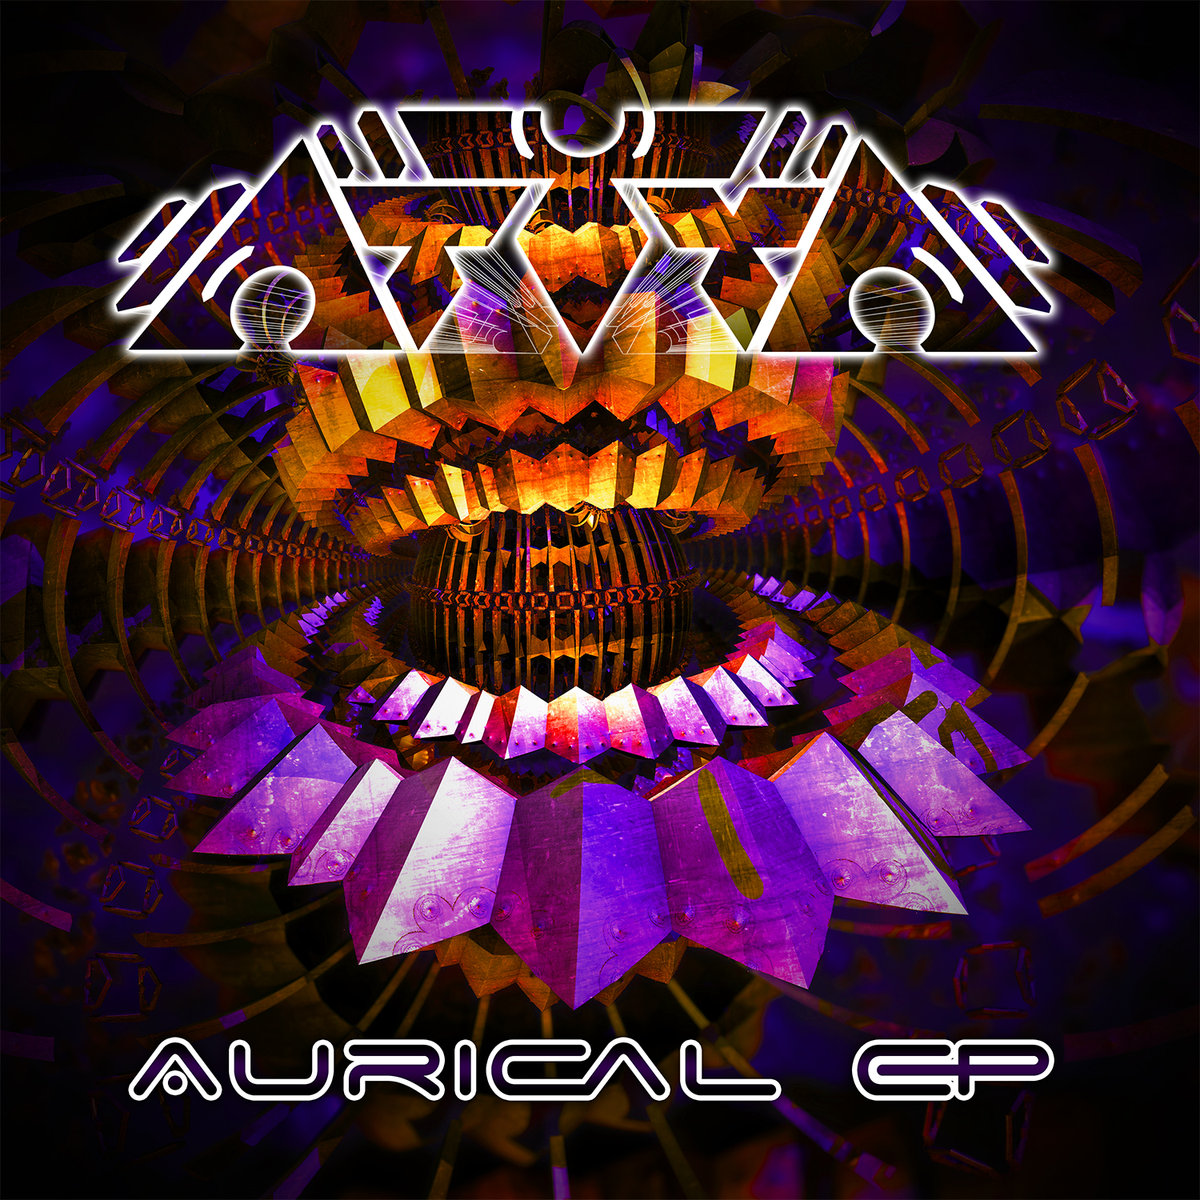 AtYyA - Aurical @ 'Aurical' album (432hz, electronic)